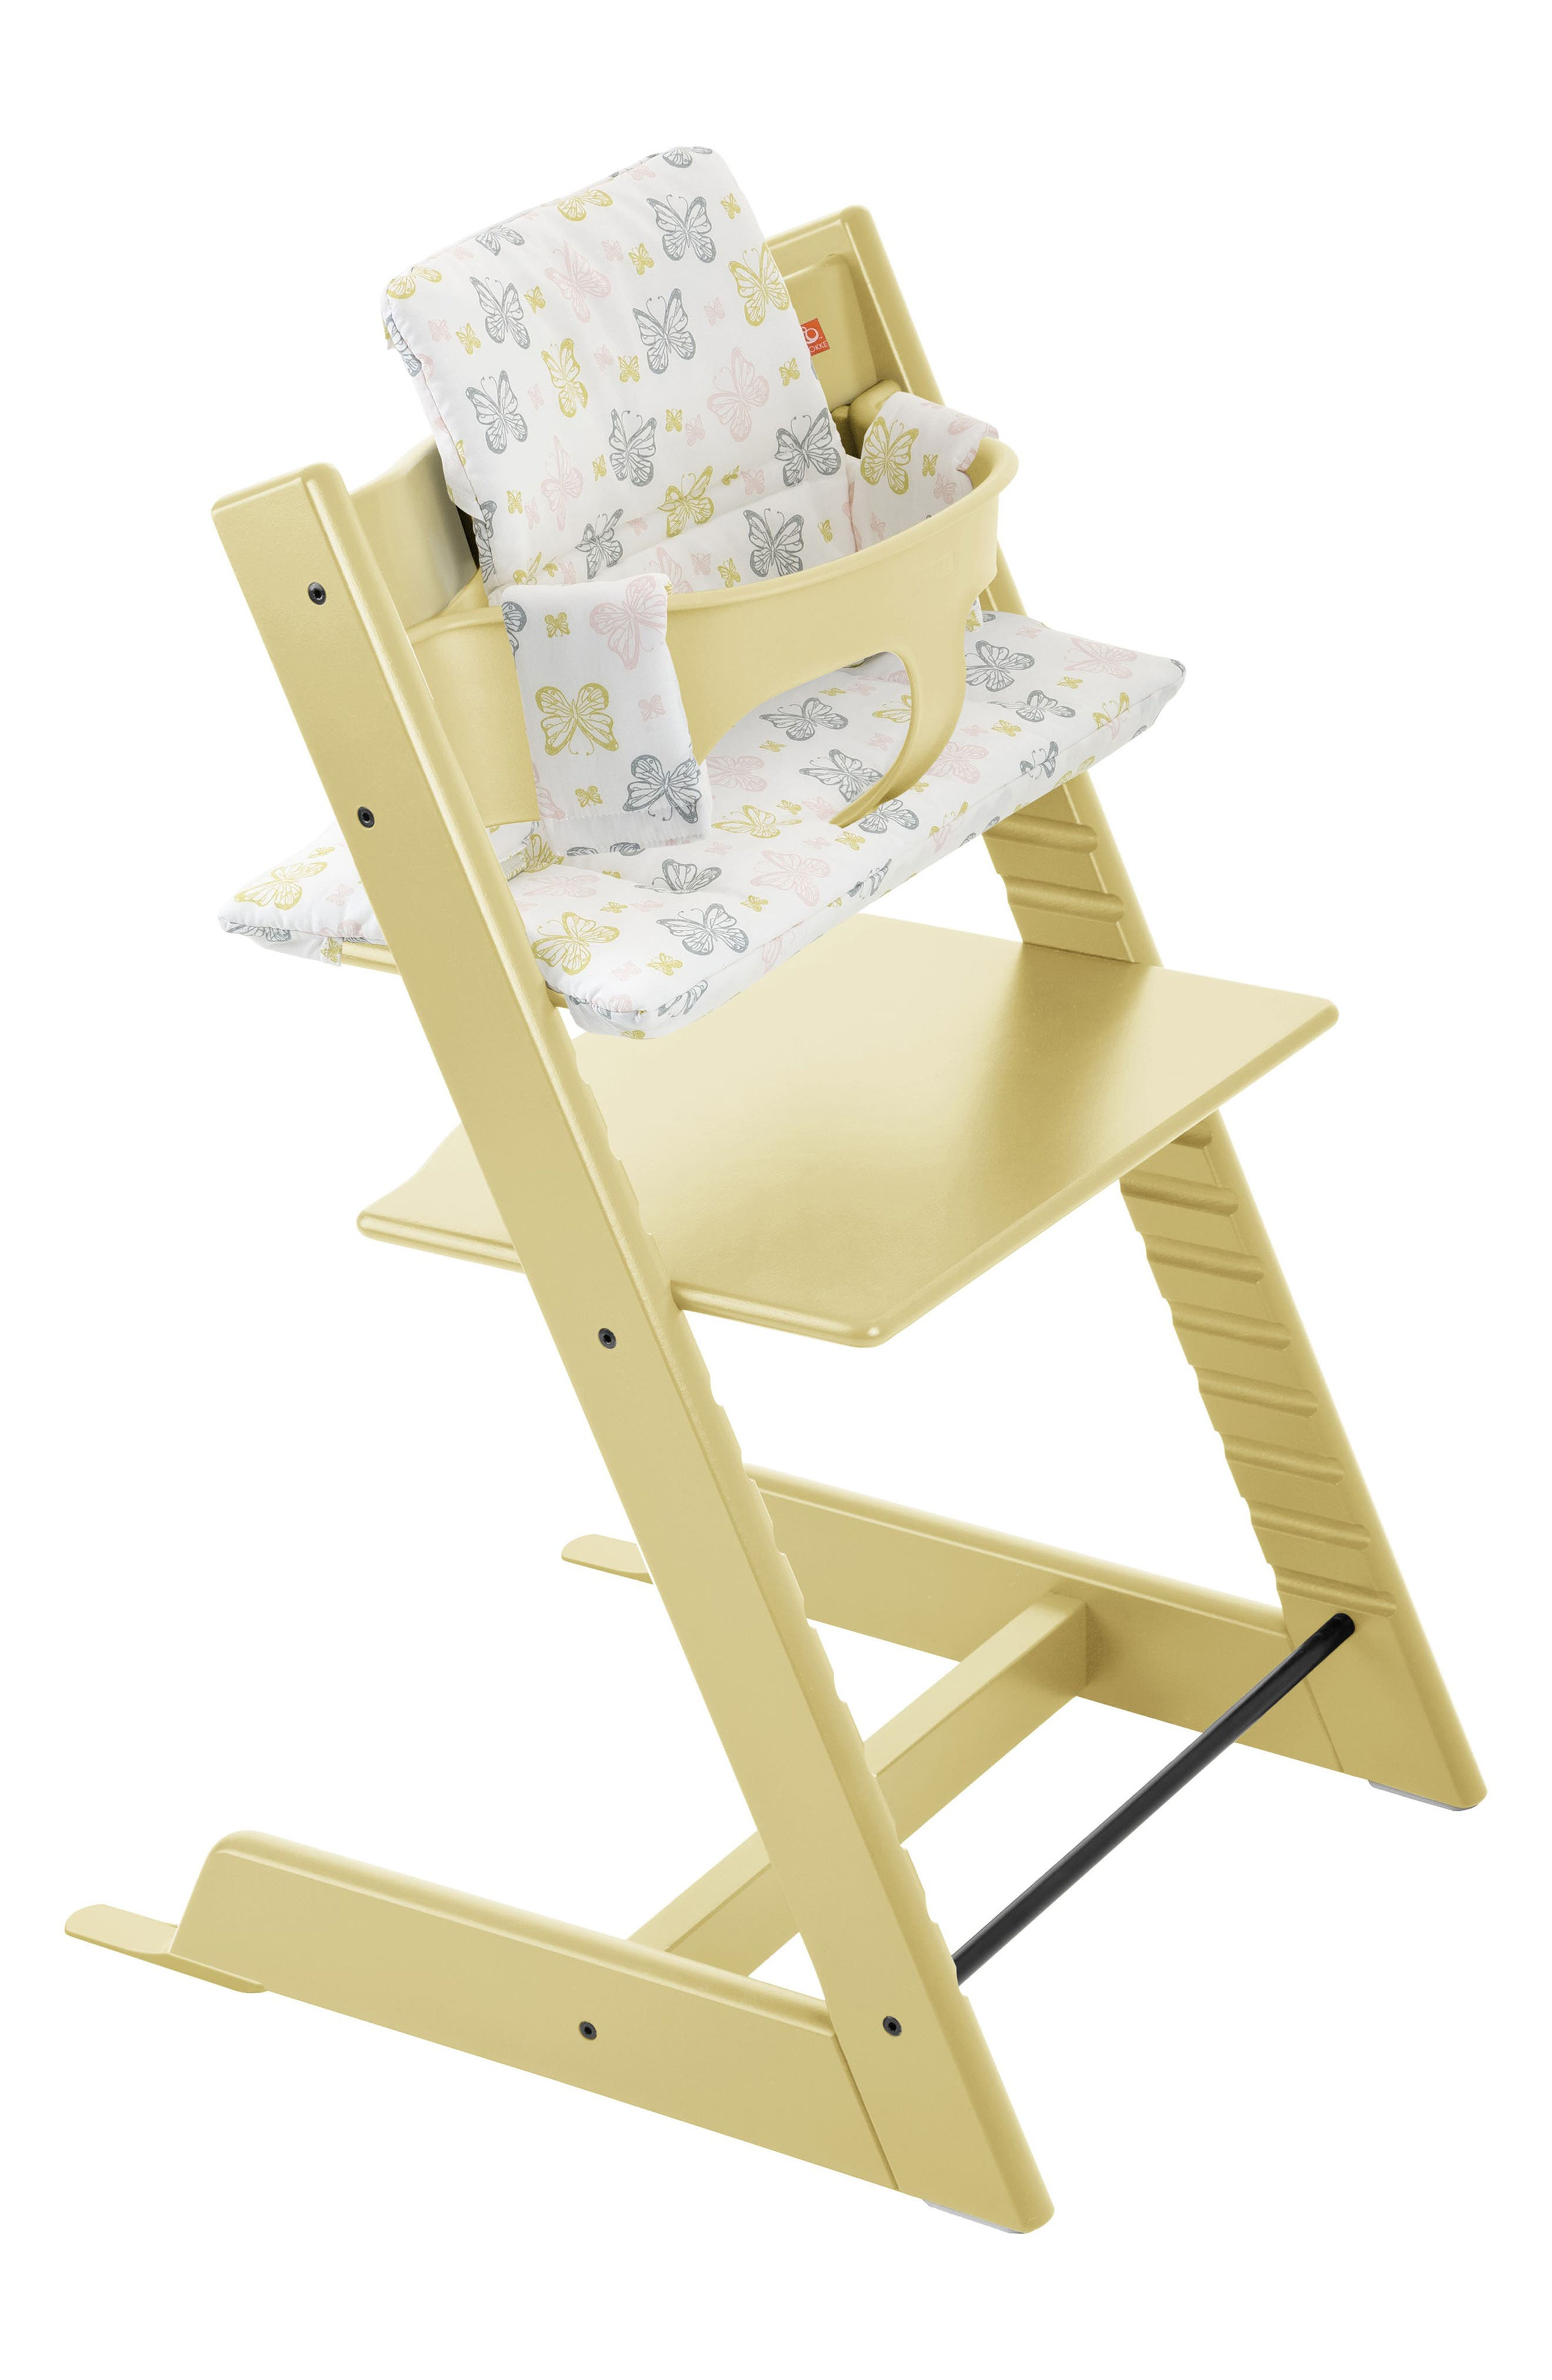 high chairs covers  booster seats for tables  nordstrom  nordstrom -